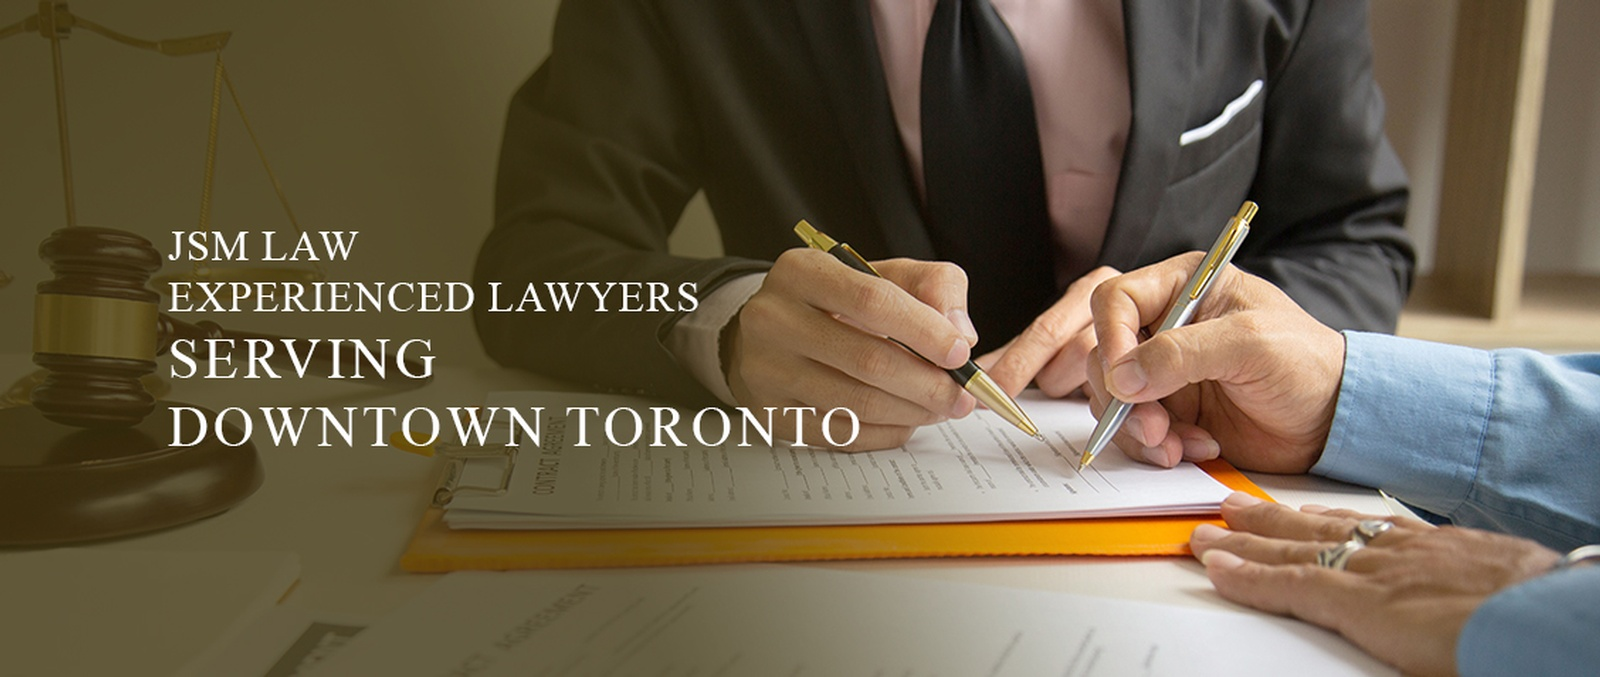 CORPORATE, CRIMINAL AND PERSONAL INJURY LAWYERS DOWNTOWN TORONTO ON